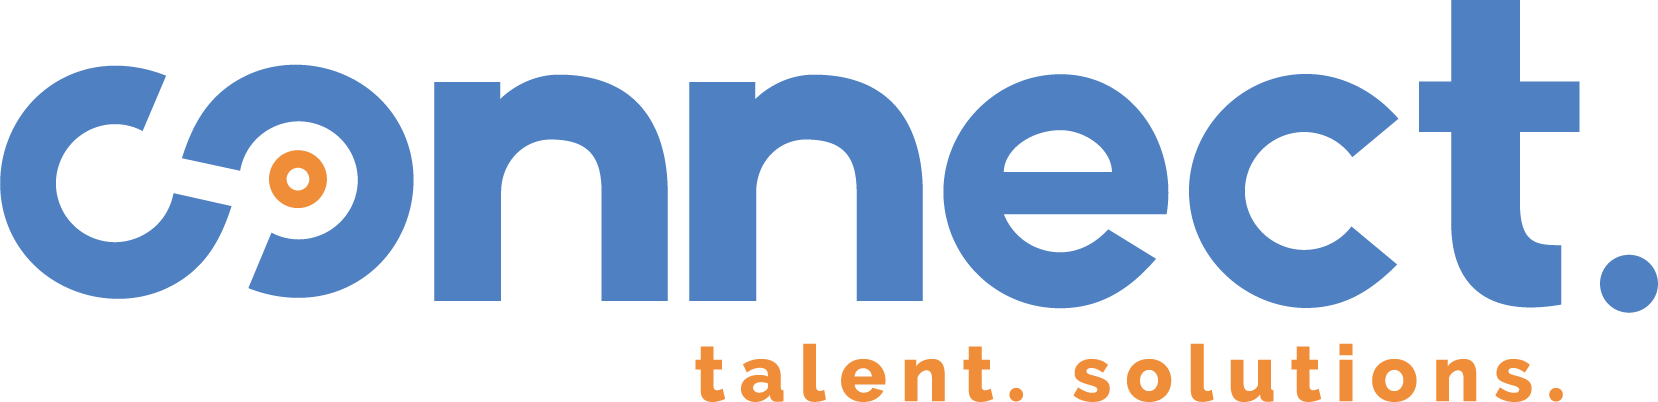 Connect Talent Solutions | Technical Recruiting and Staffing Services